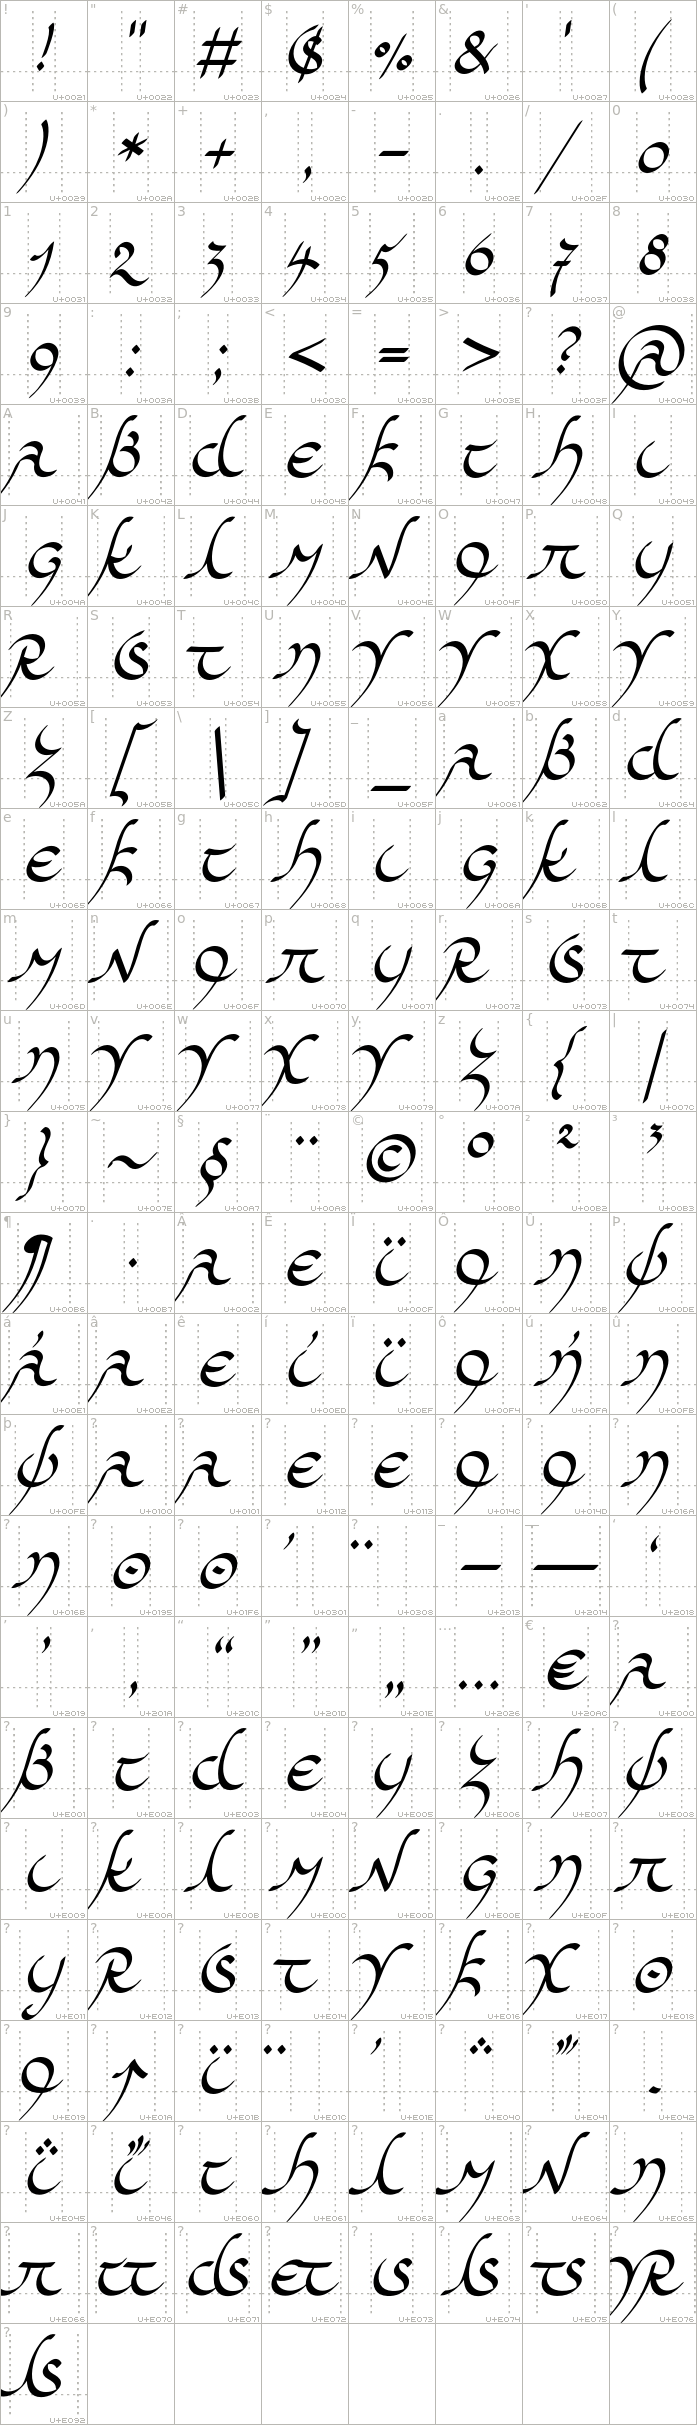 midjungards.italic.character-map-1